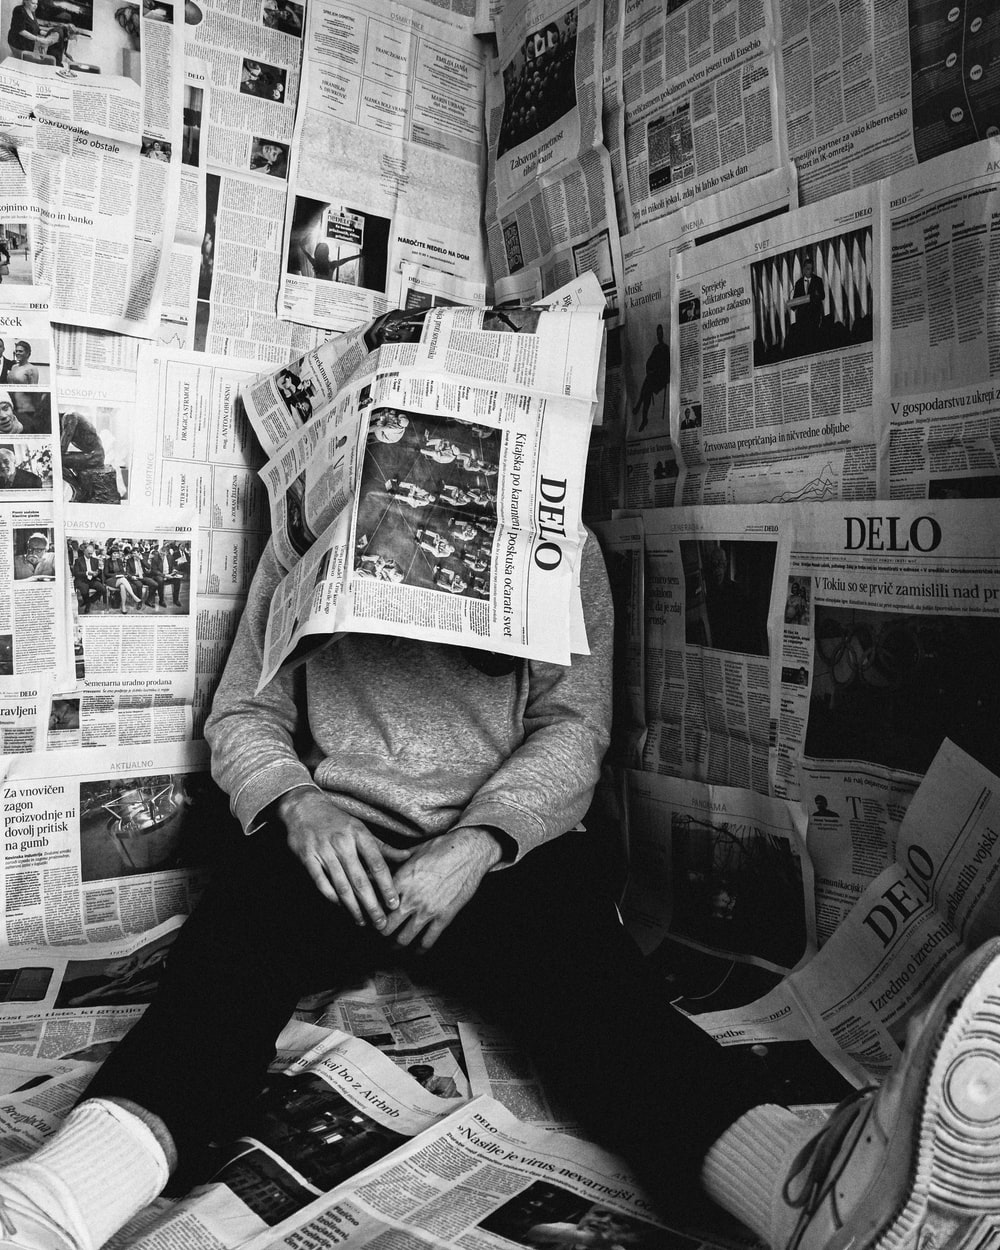 20 Newspaper Pictures Download Free Images On Unsplash